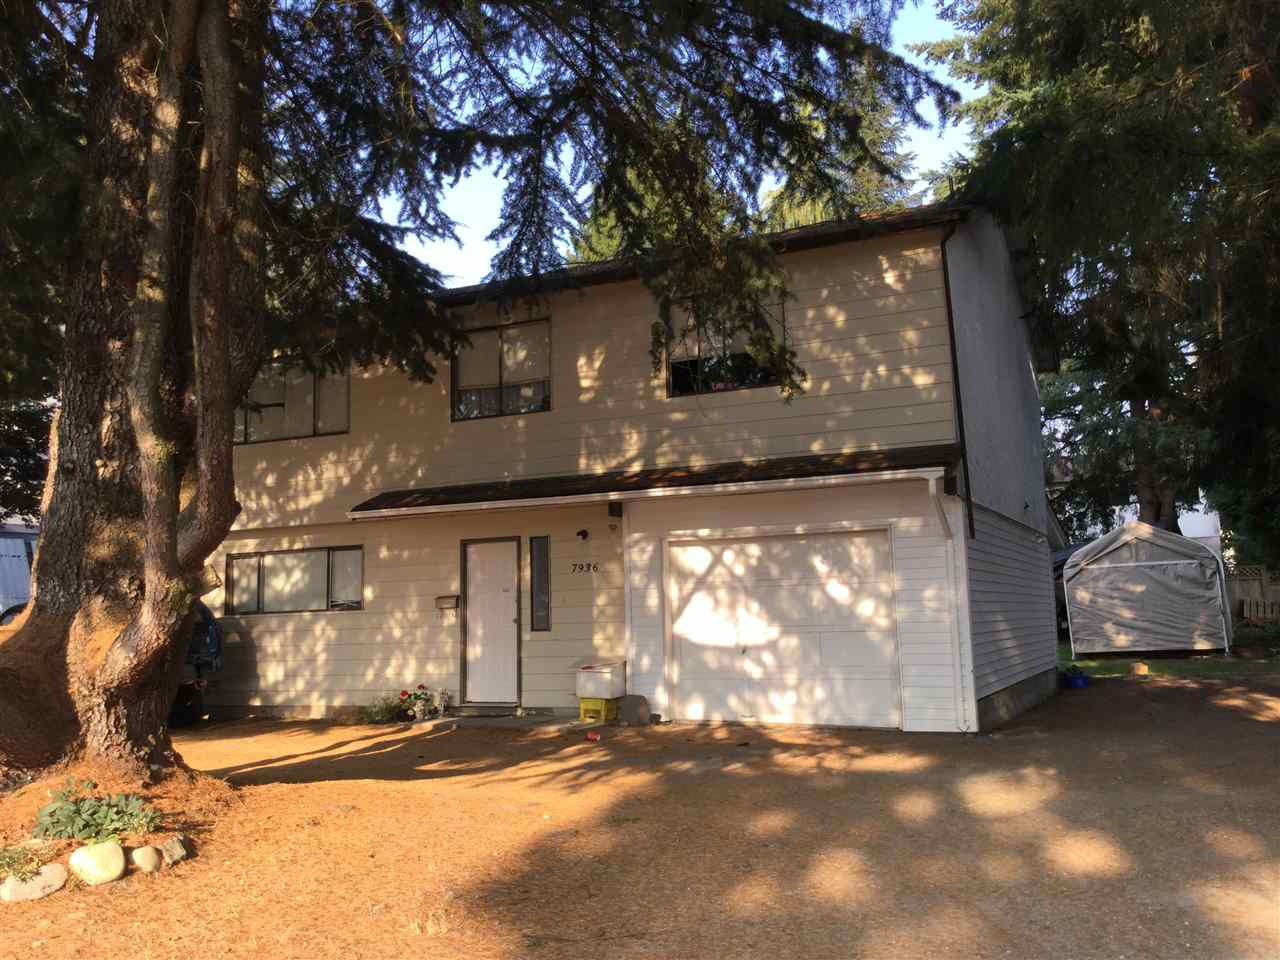 Main Photo: 7936 HURD Street in Mission: Mission BC House for sale : MLS®# R2201272